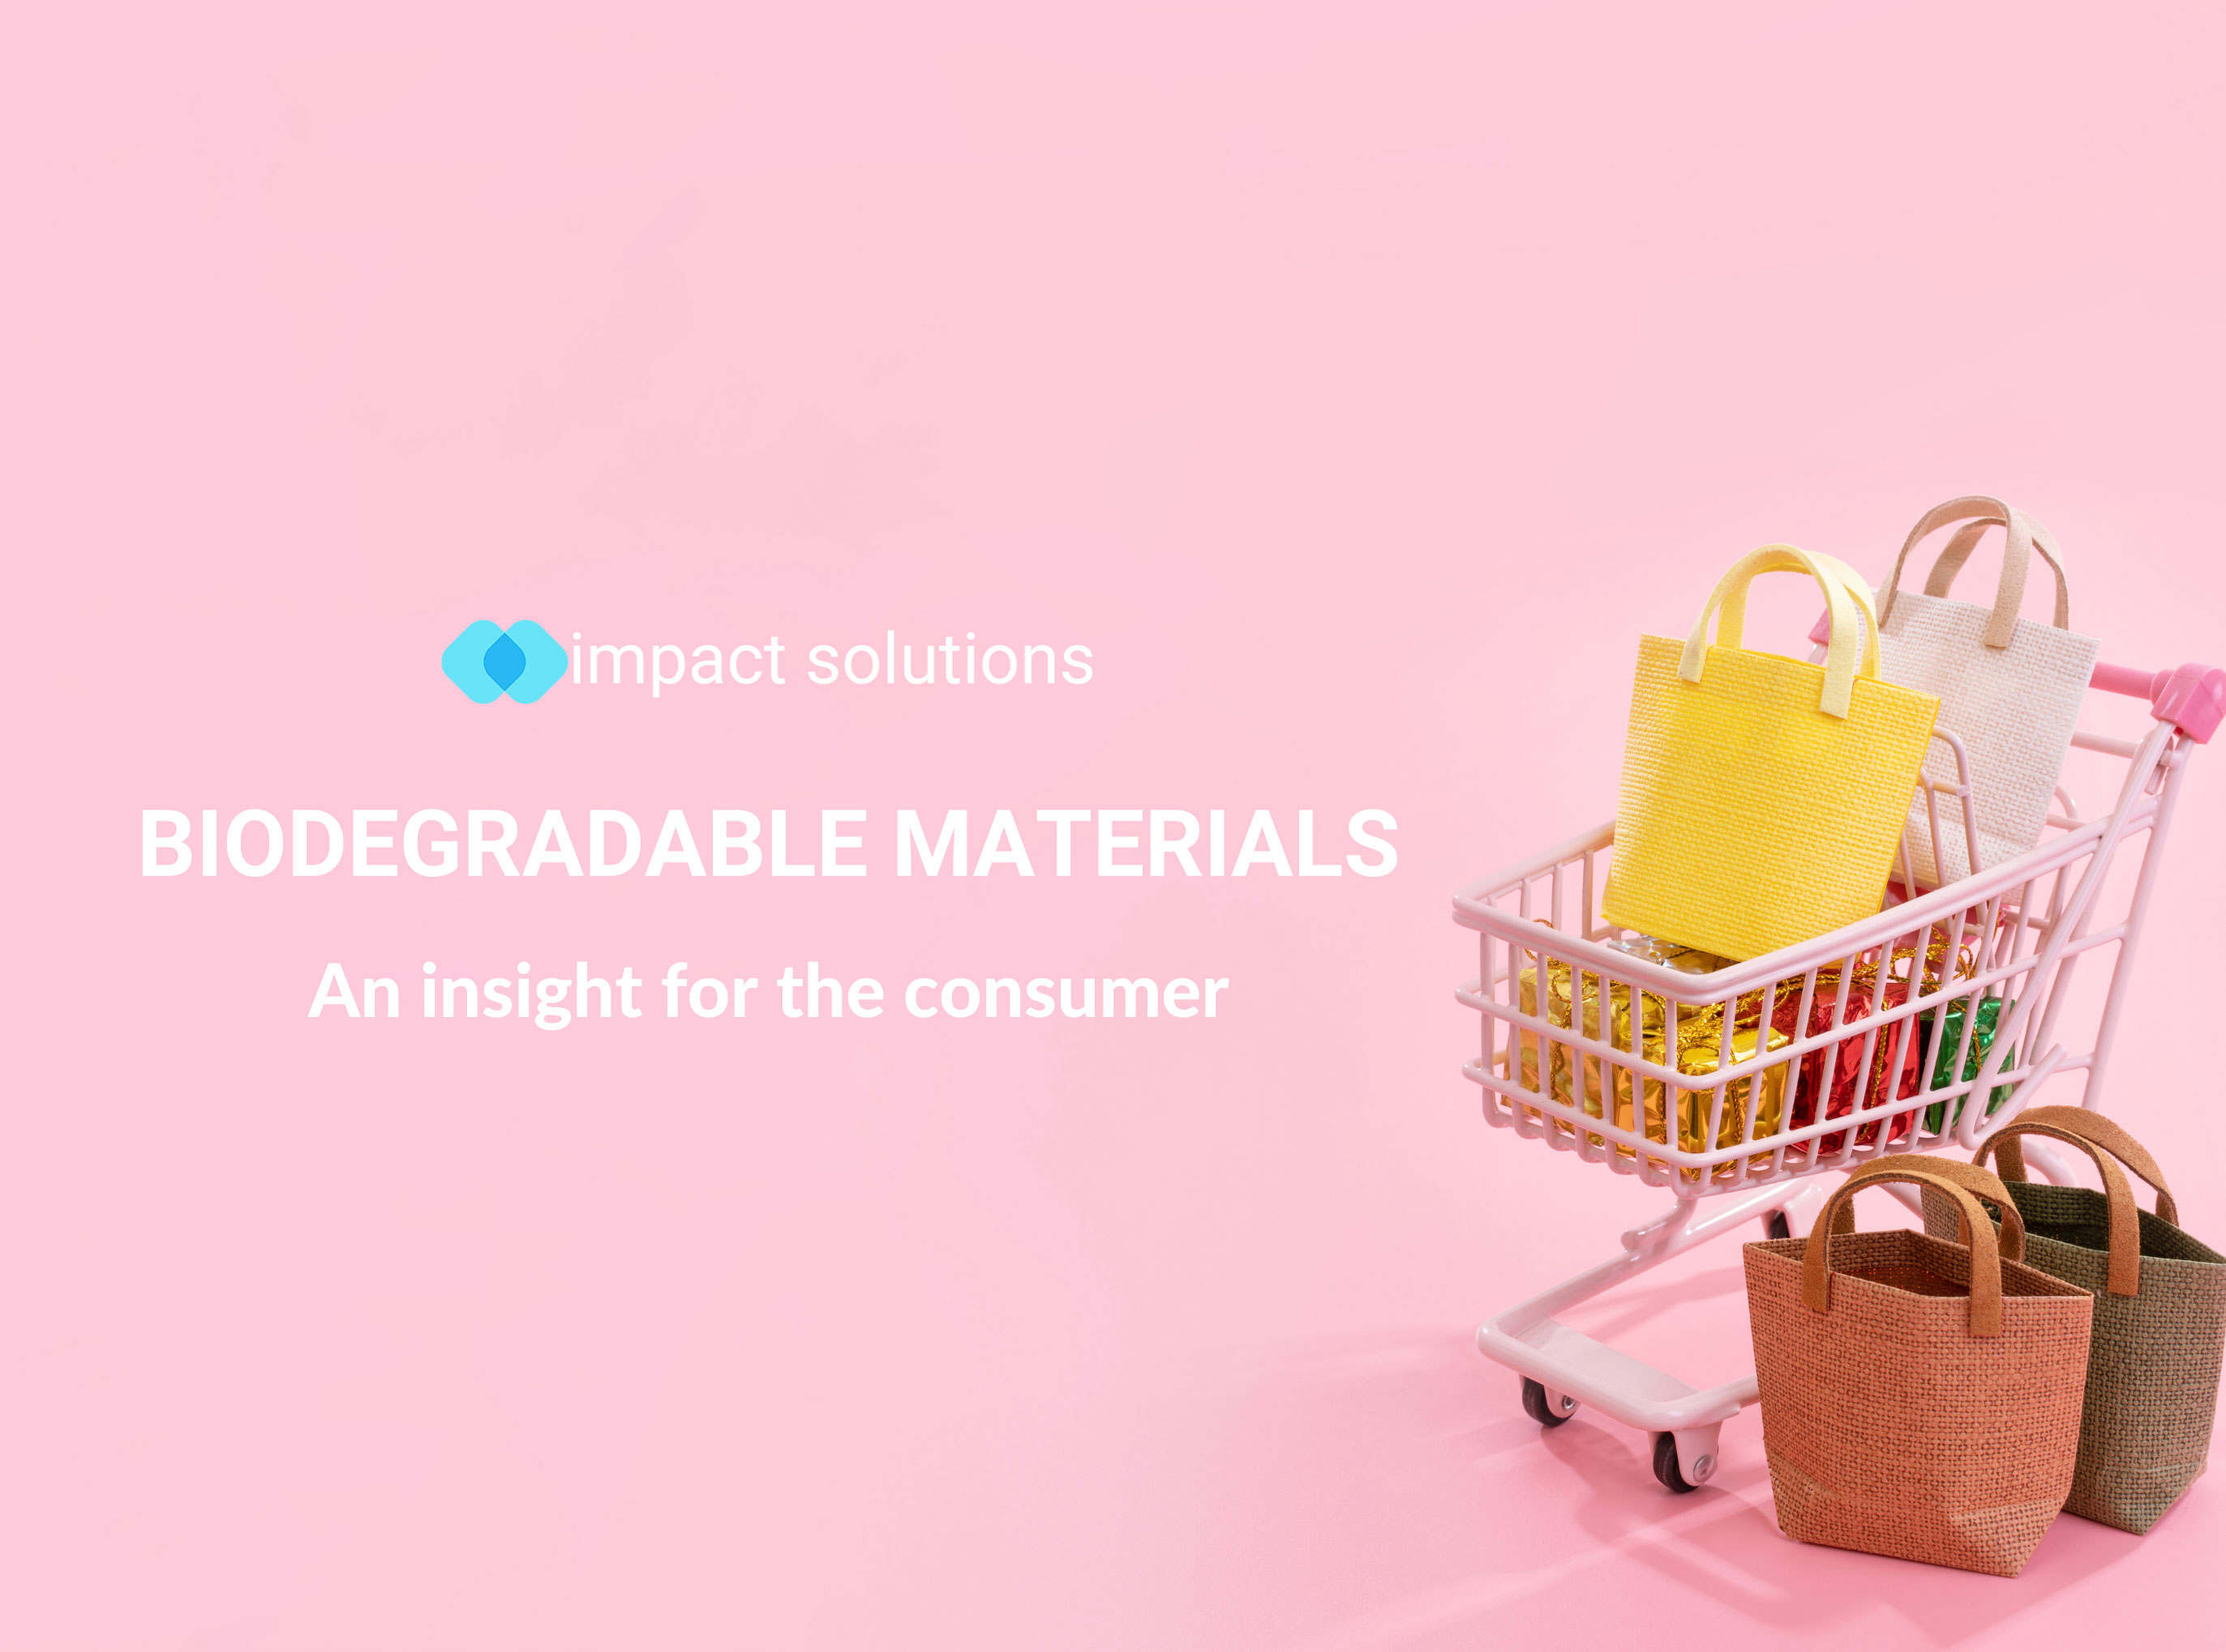 BIODEGRADABLE MATERIALS: AN INSIGHT FOR THE CONSUMER